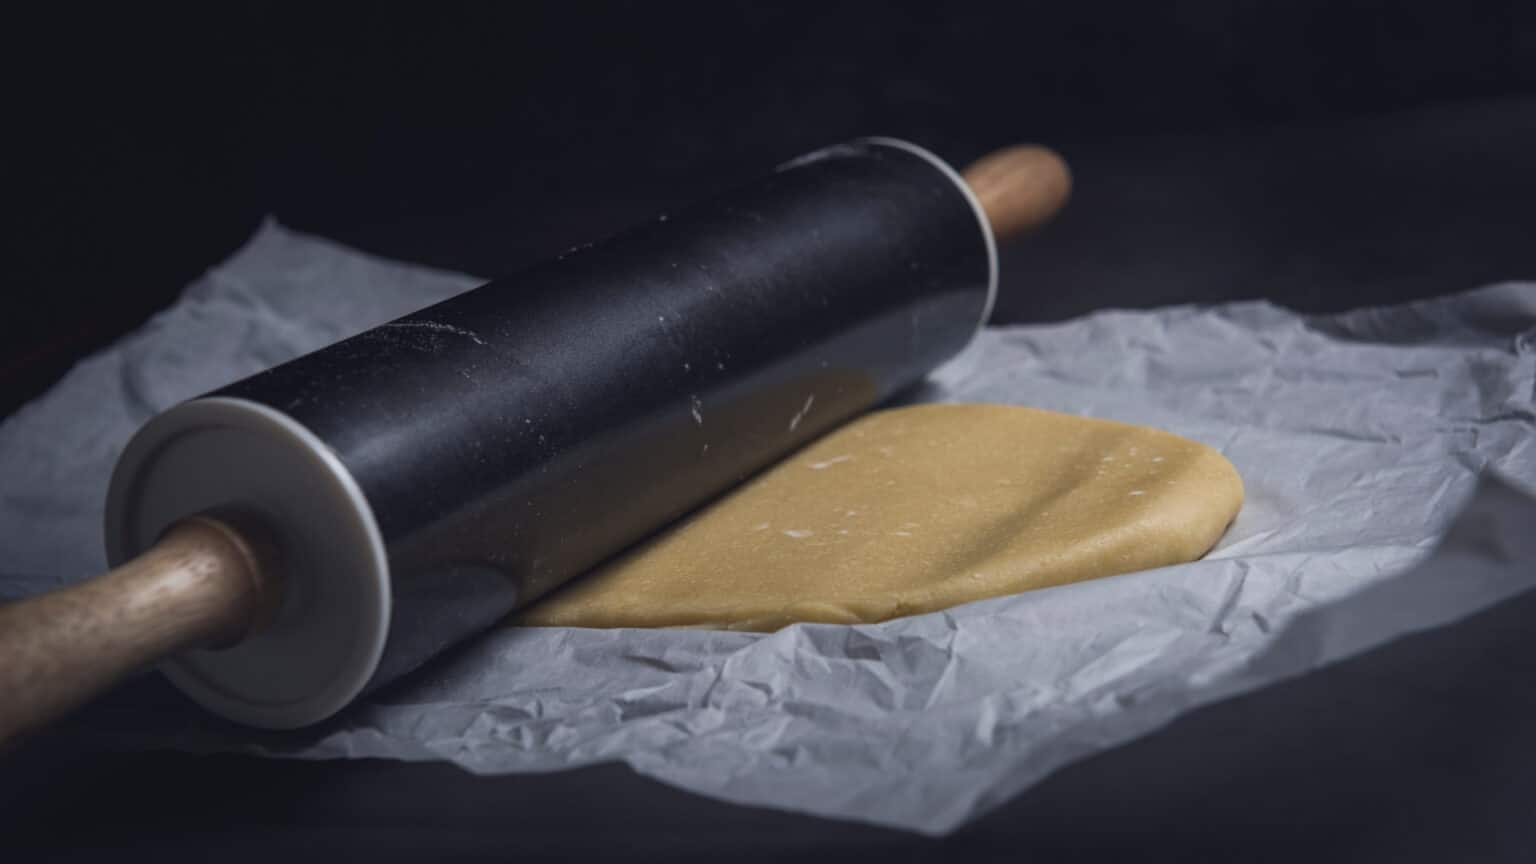 Is It Worth Buying a Rolling Pin Made of Plastic